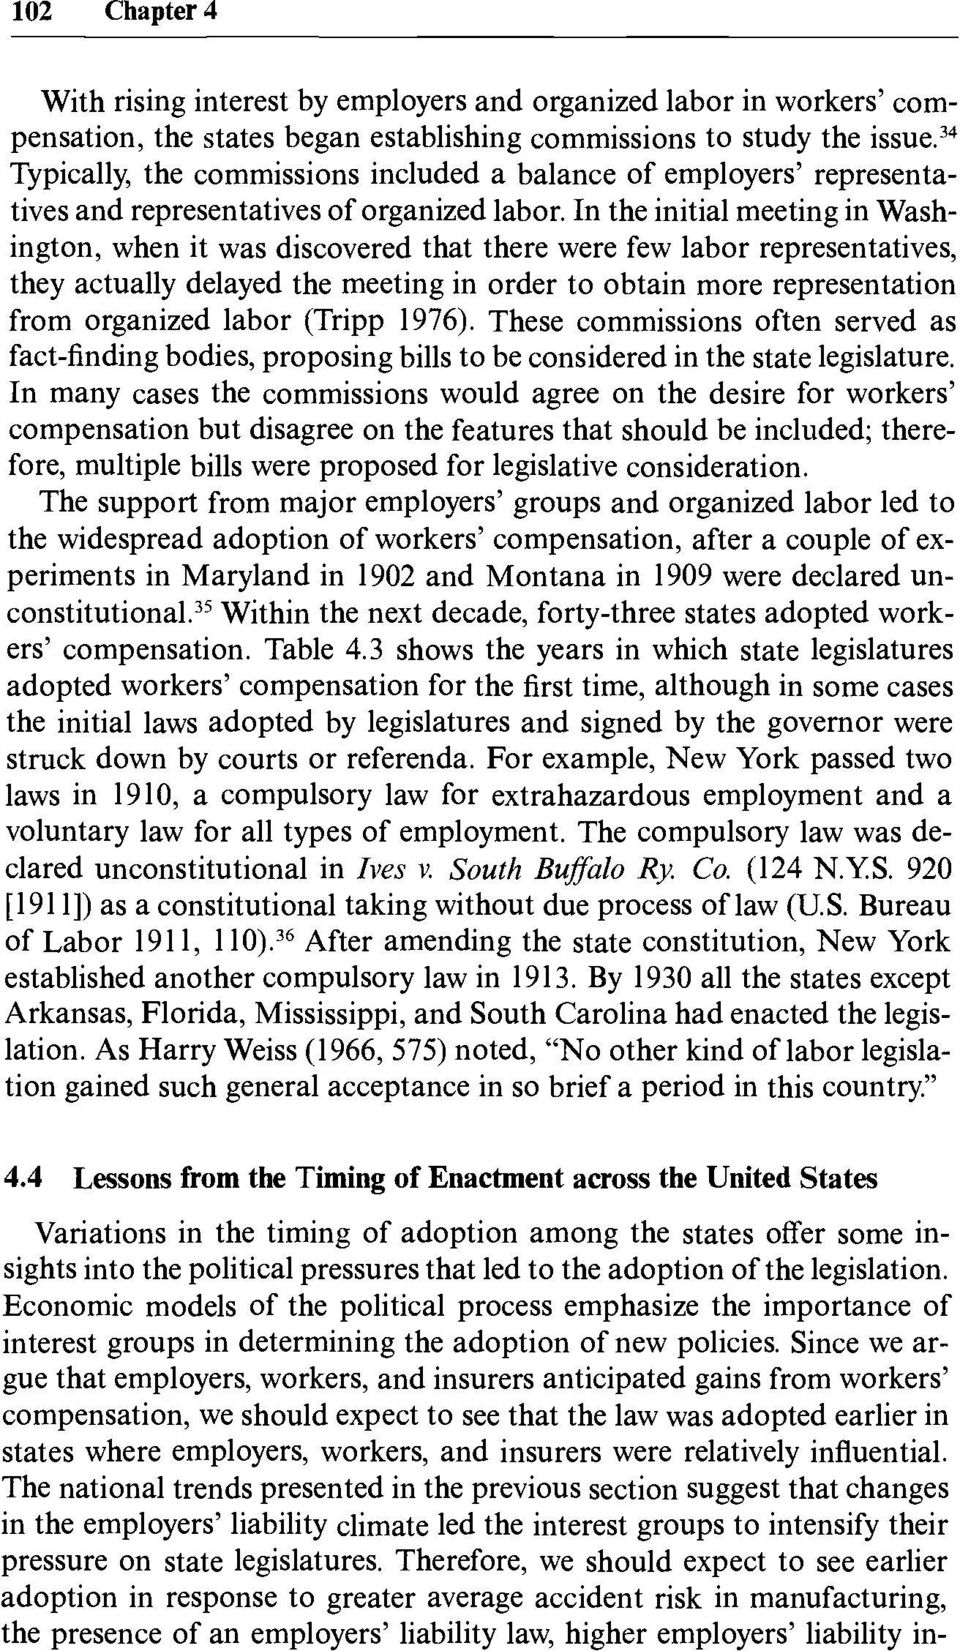 In the initial meeting in Washington, when it was discovered that there were few labor representatives, they actually delayed the meeting in order to obtain more representation from organized labor